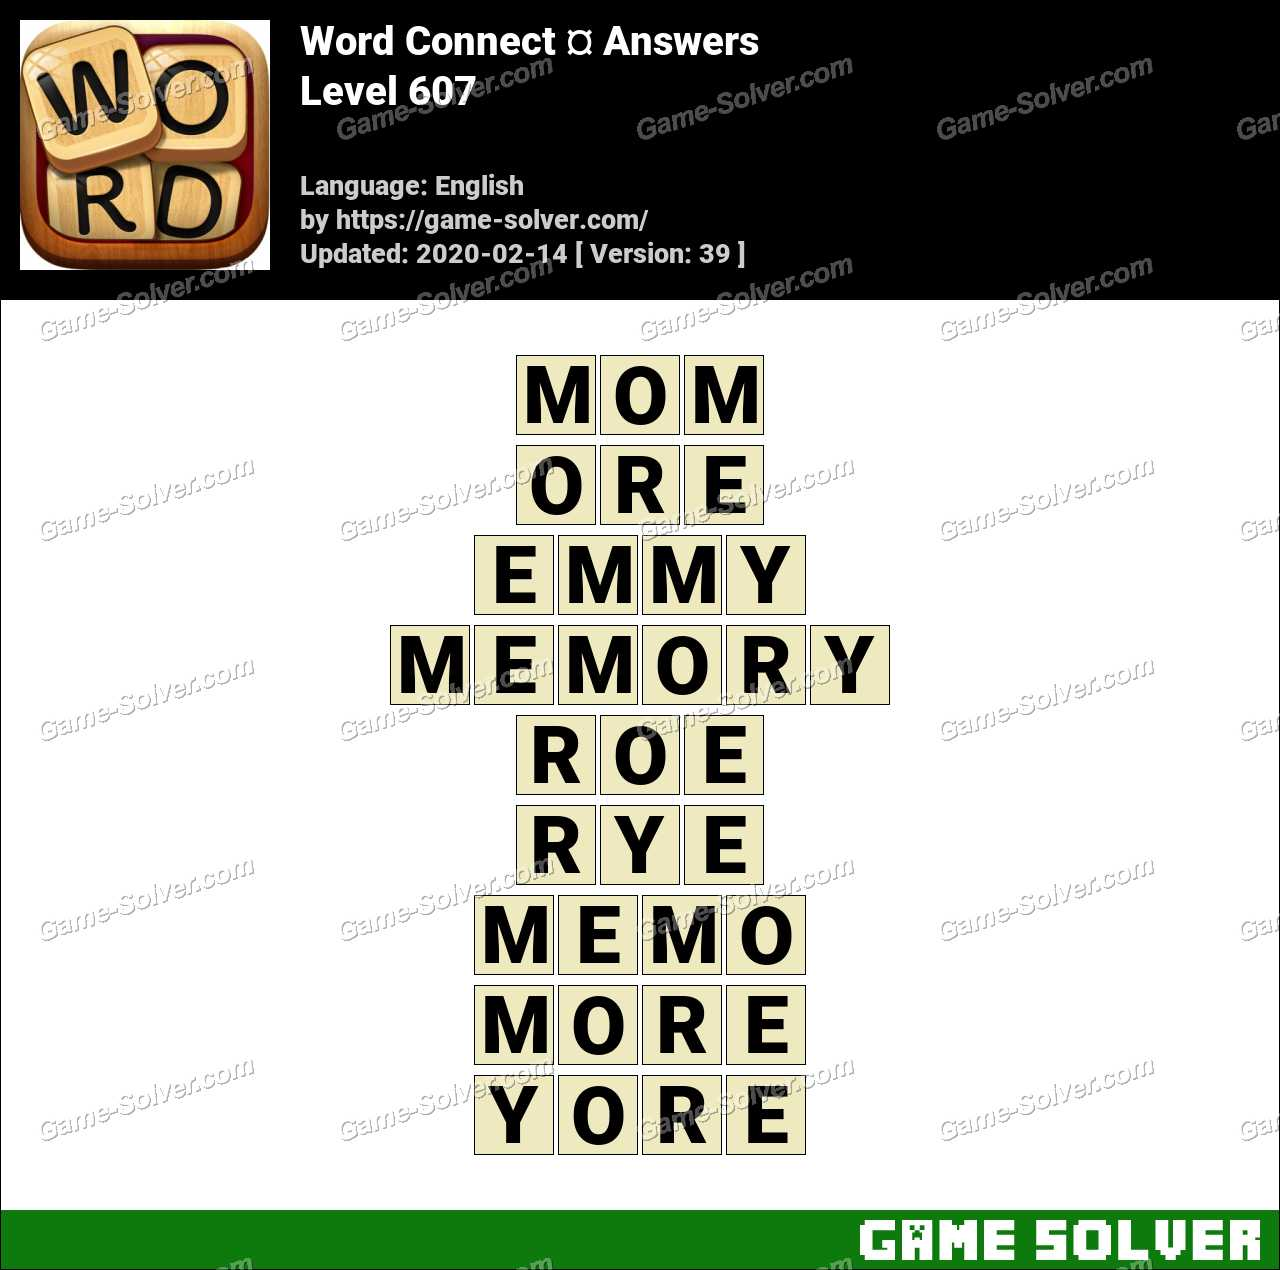 Word Connect Level 607 Answers